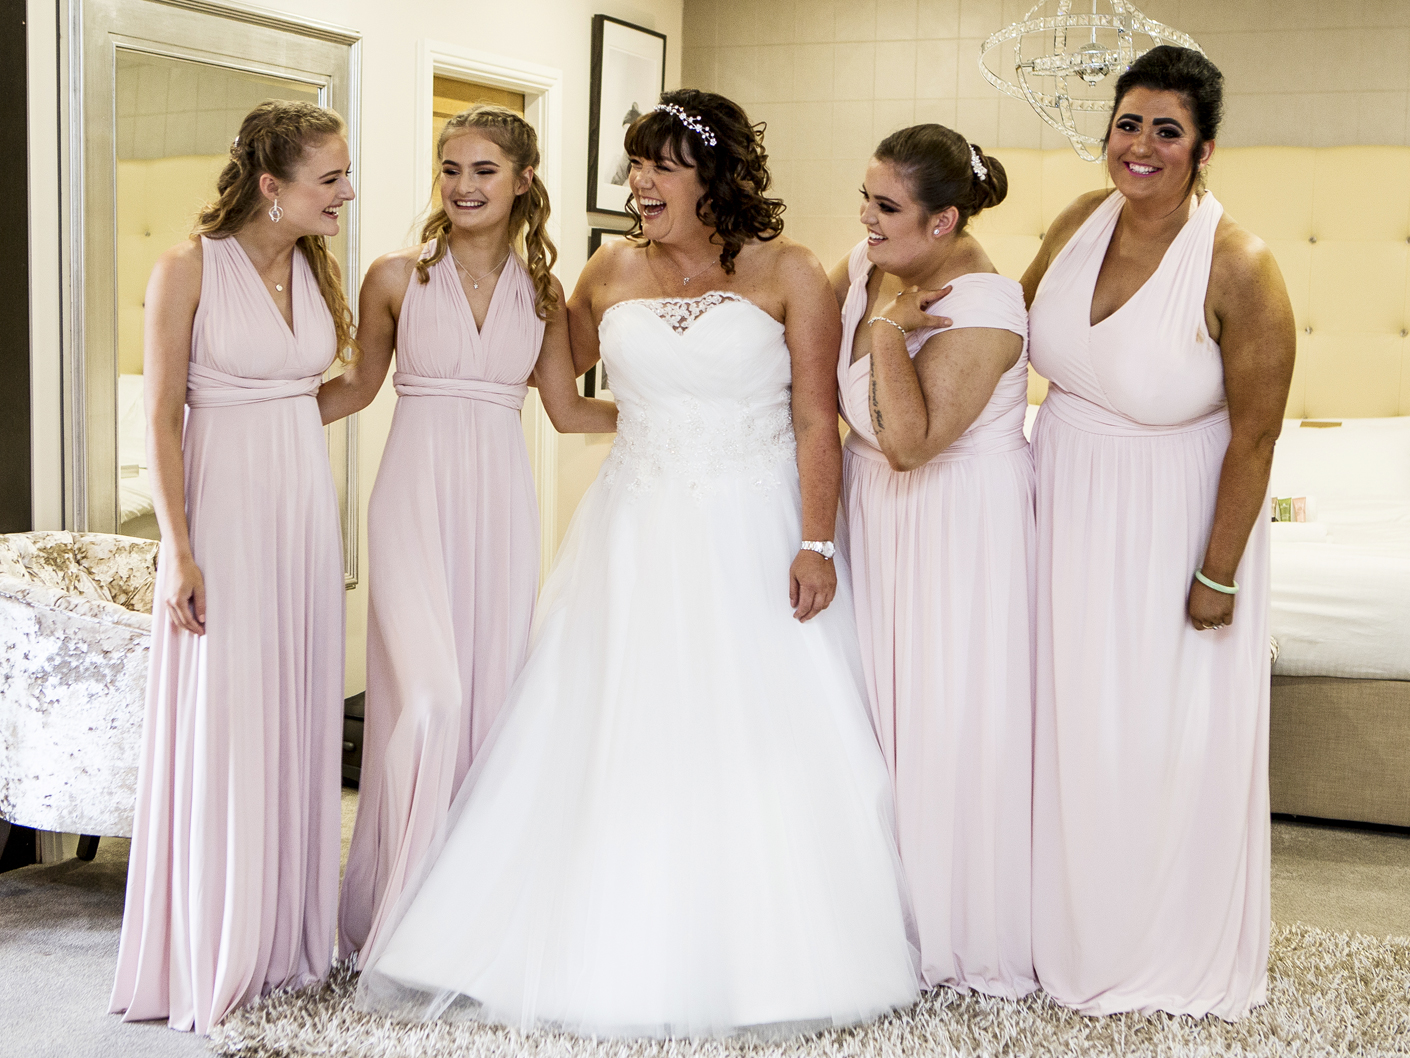 wedding-photography-of-the-bride-and-bridesmaids-at-merrydale-manor-knutsford-cheshire